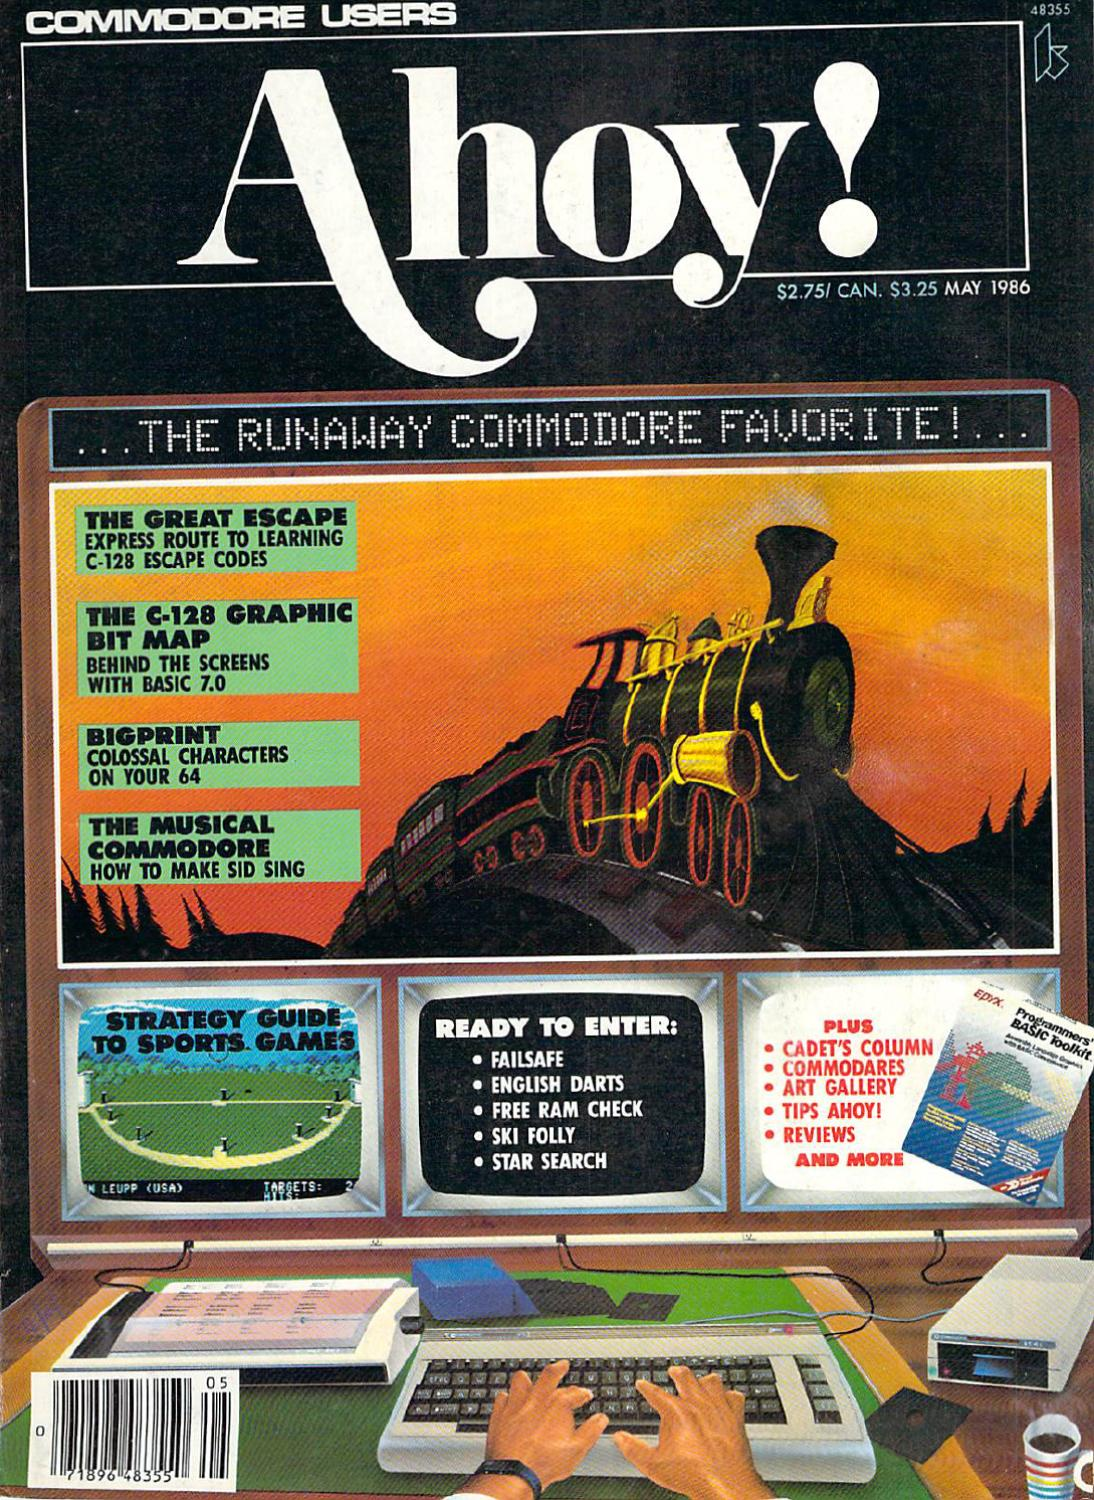 Banc Fer forgé Leroy Merlin Beau Ahoy issue 29 1986 May by Zetmoon issuu Of 37 Élégant Banc Fer forgé Leroy Merlin